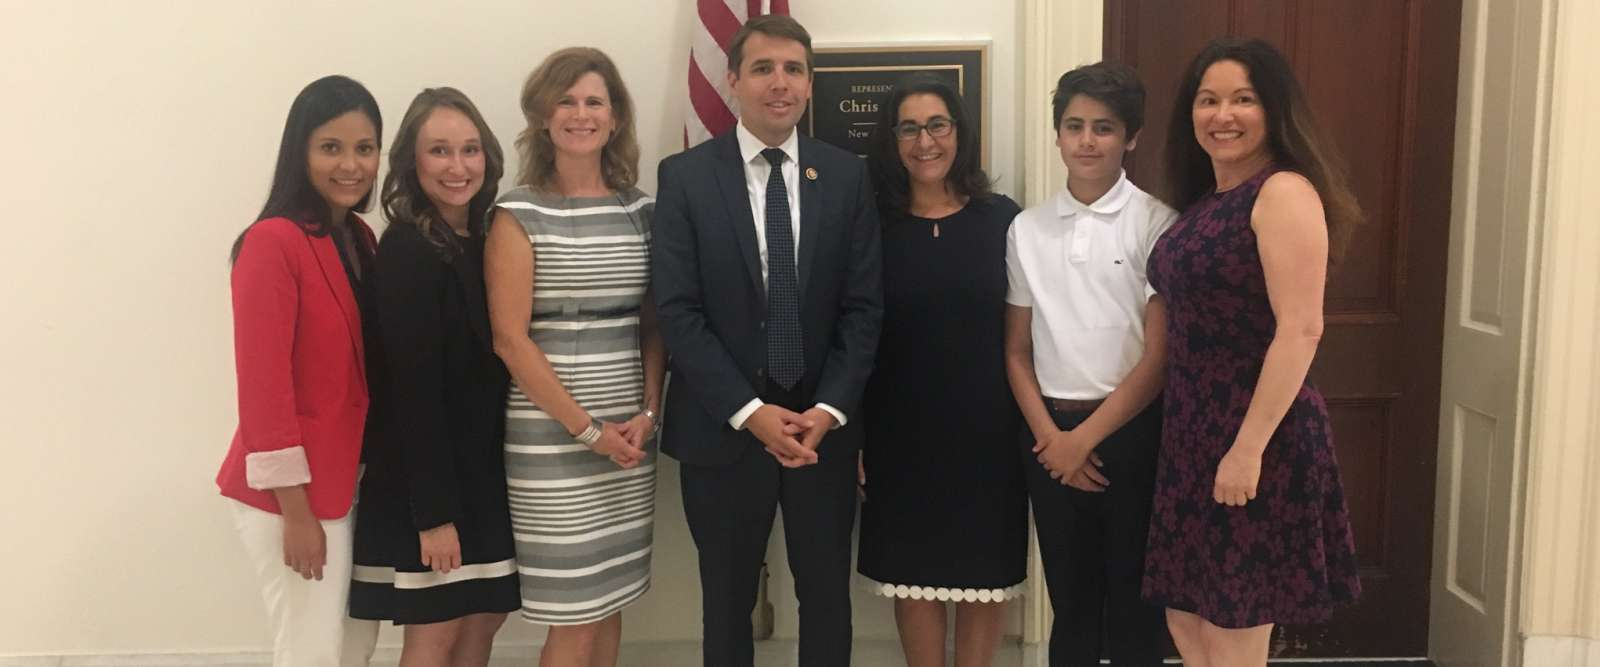 Keene State Dietetic Students with Congressman Chris Pappas